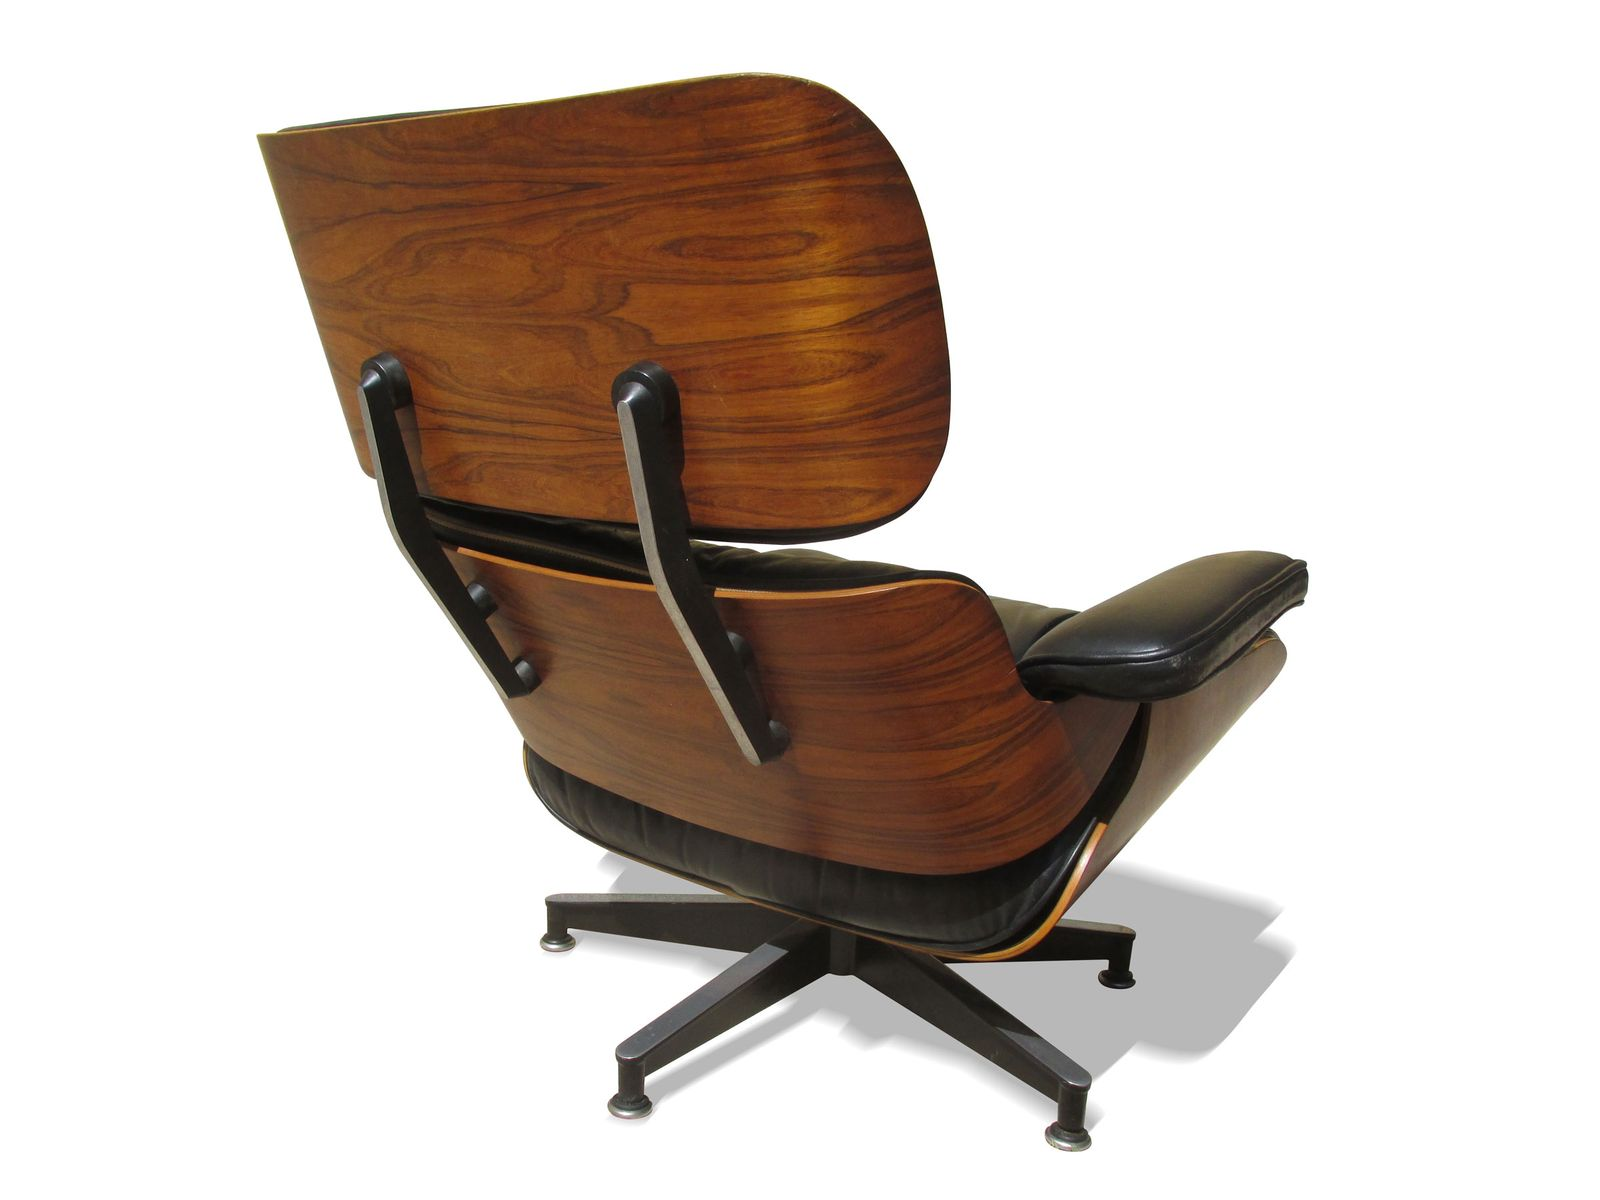 670 671 lounge chair and ottoman by charles and ray eames for Eames lounge sessel nachbau